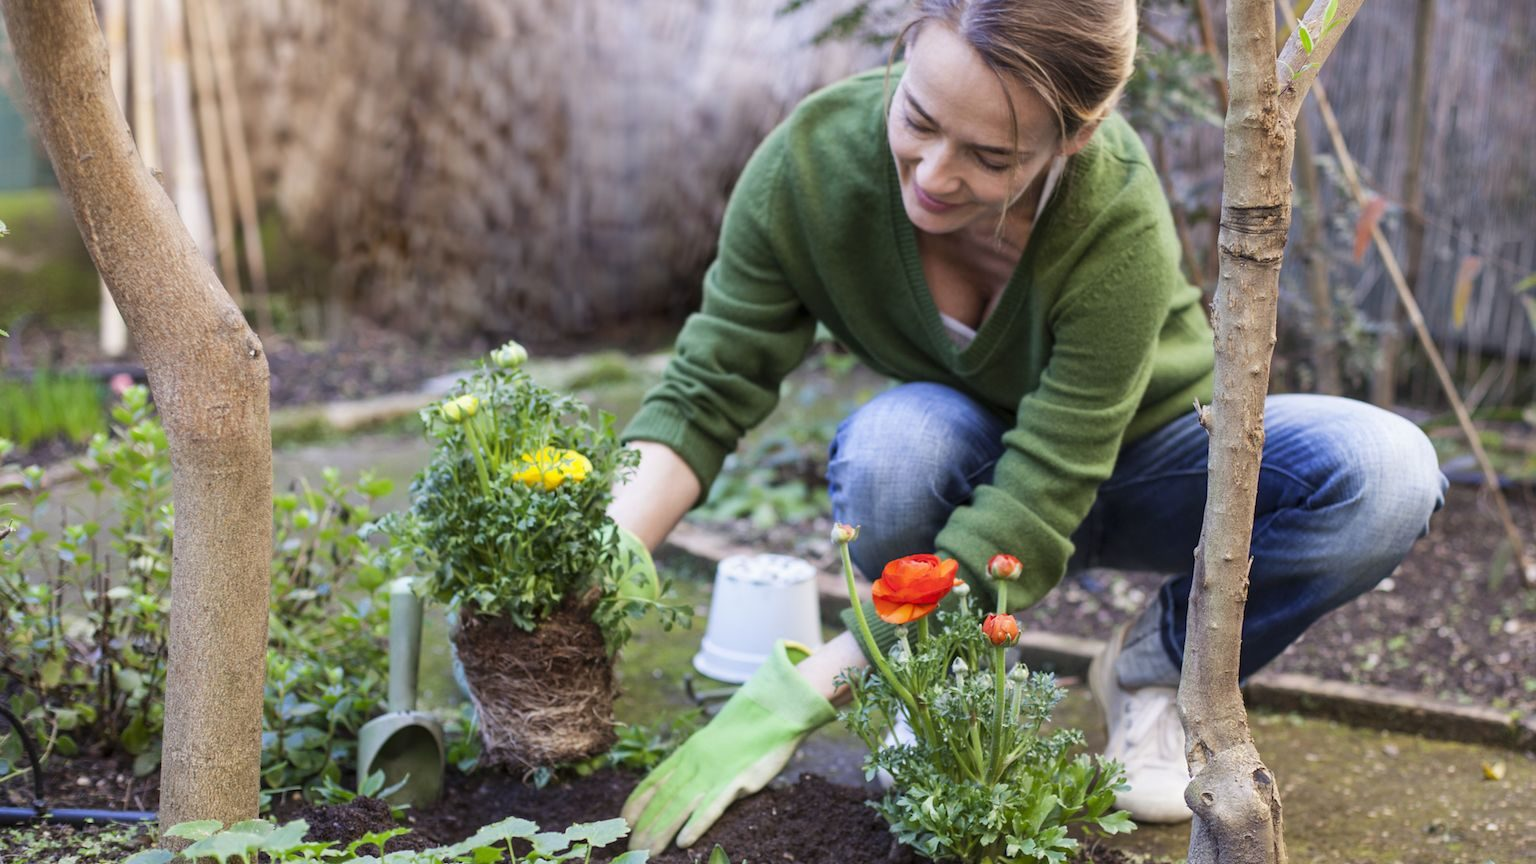 Woman planting flowers in her gardening using gardening tools